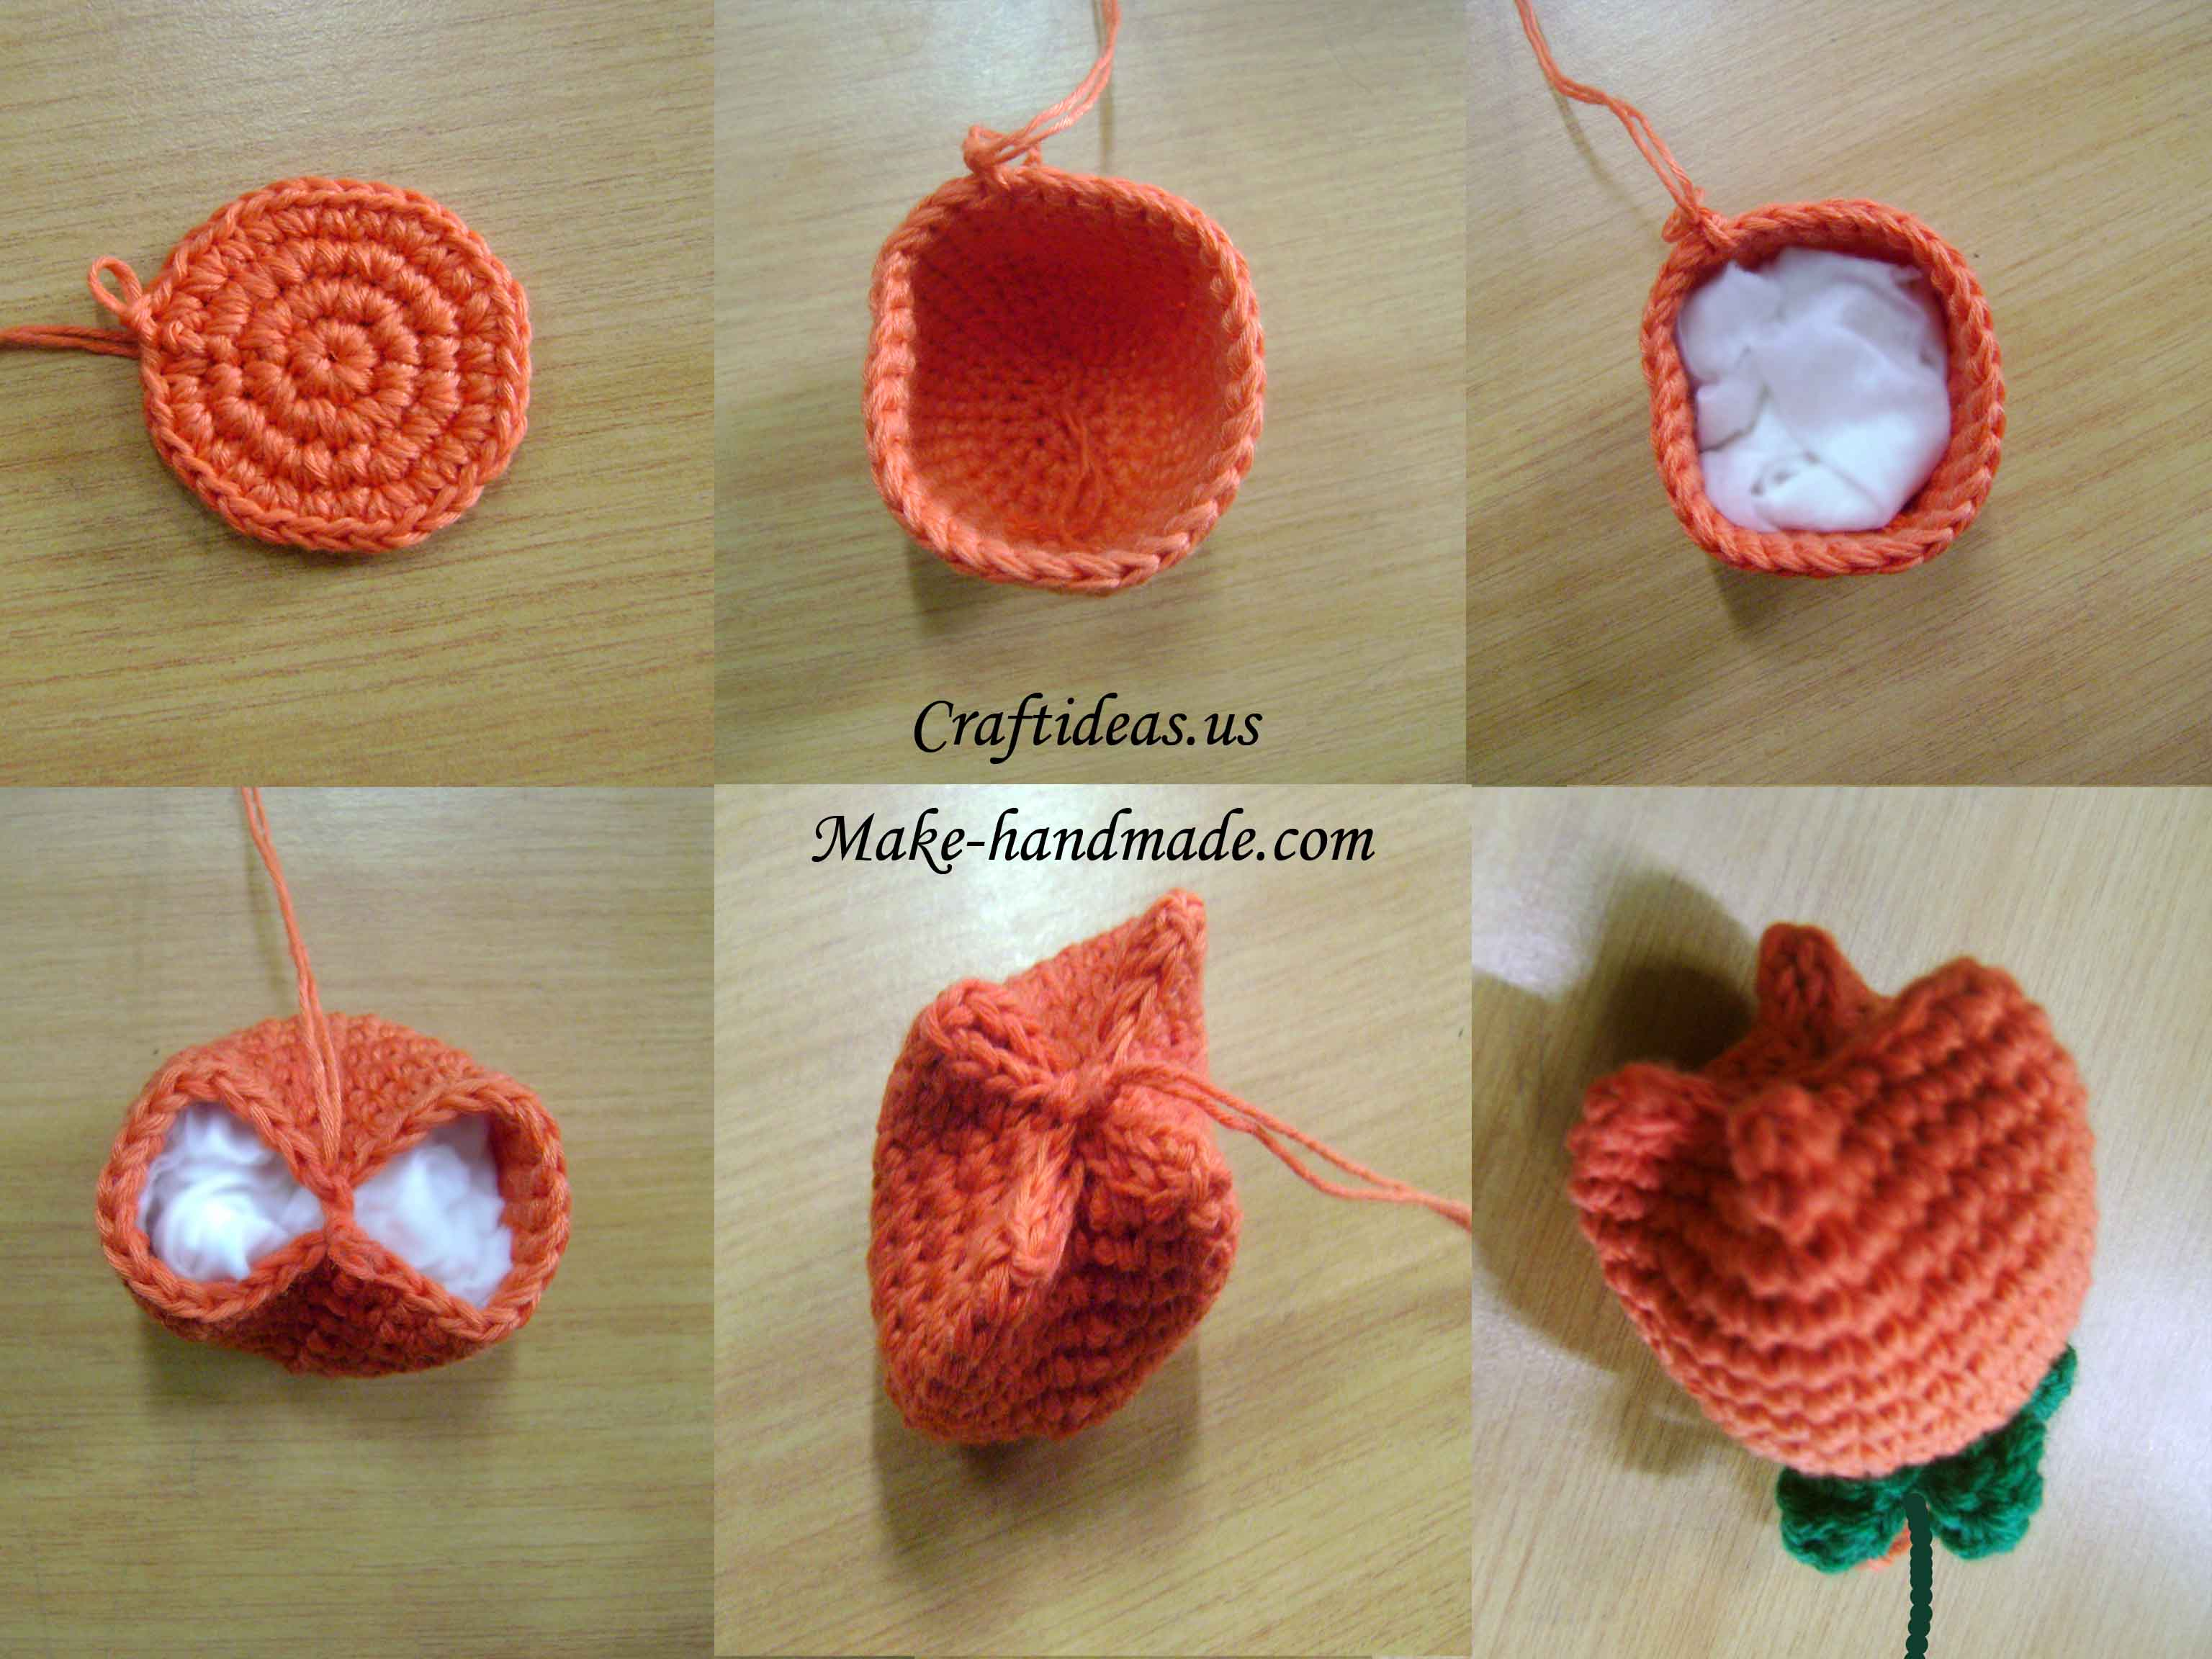 Amigurumi Flower Tutorial : Crochet tulip flower tutorial - Craft Ideas